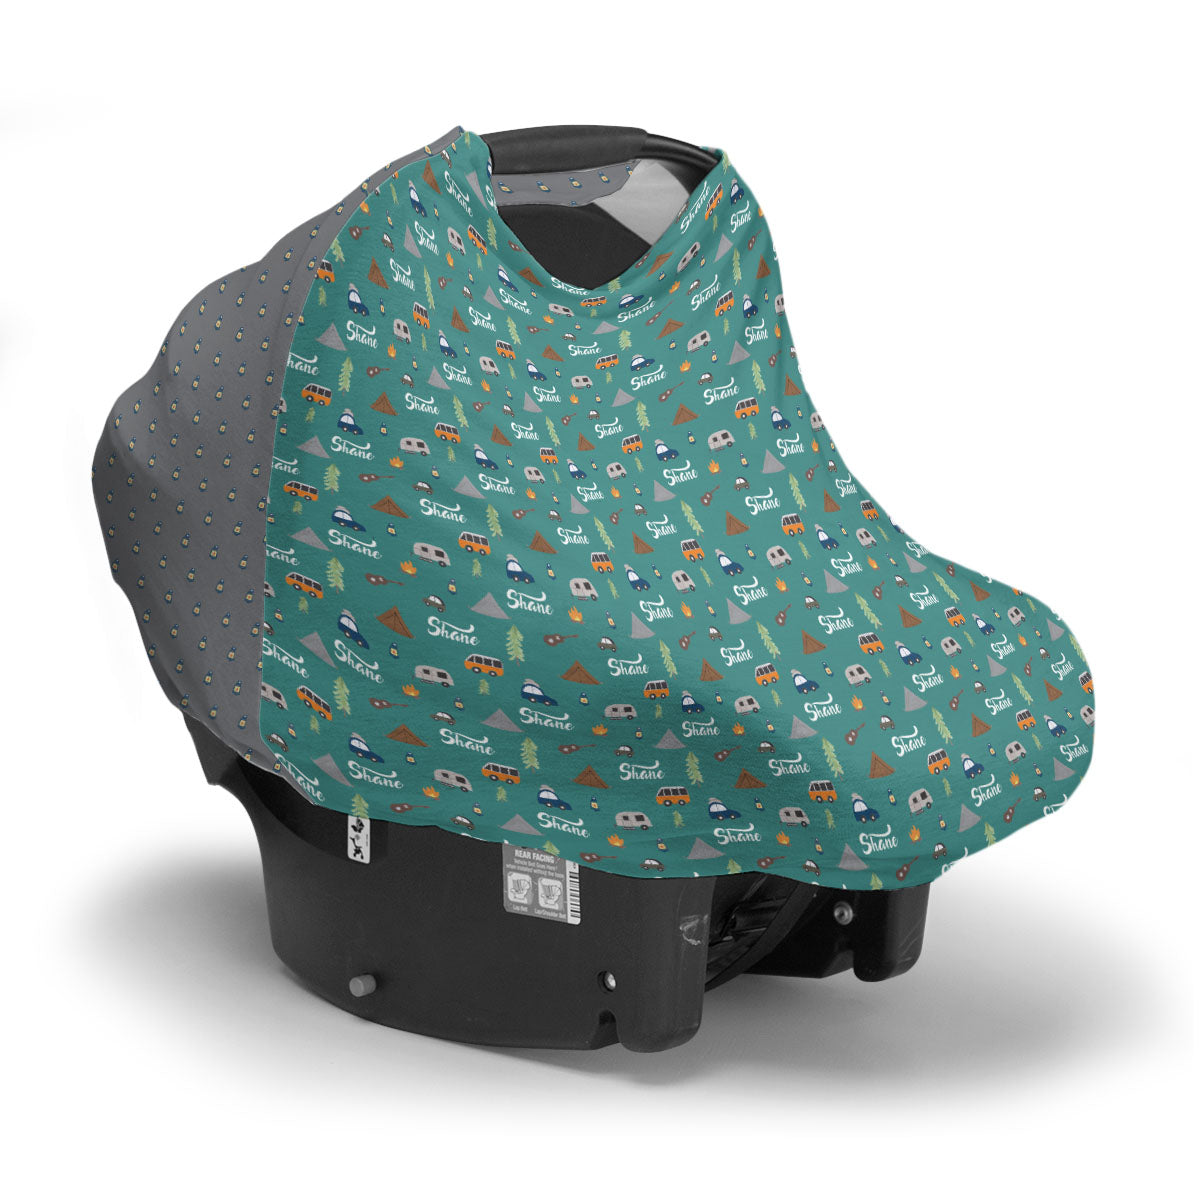 Shane's Camping Trip | Car Seat Cover (Multi-Use)